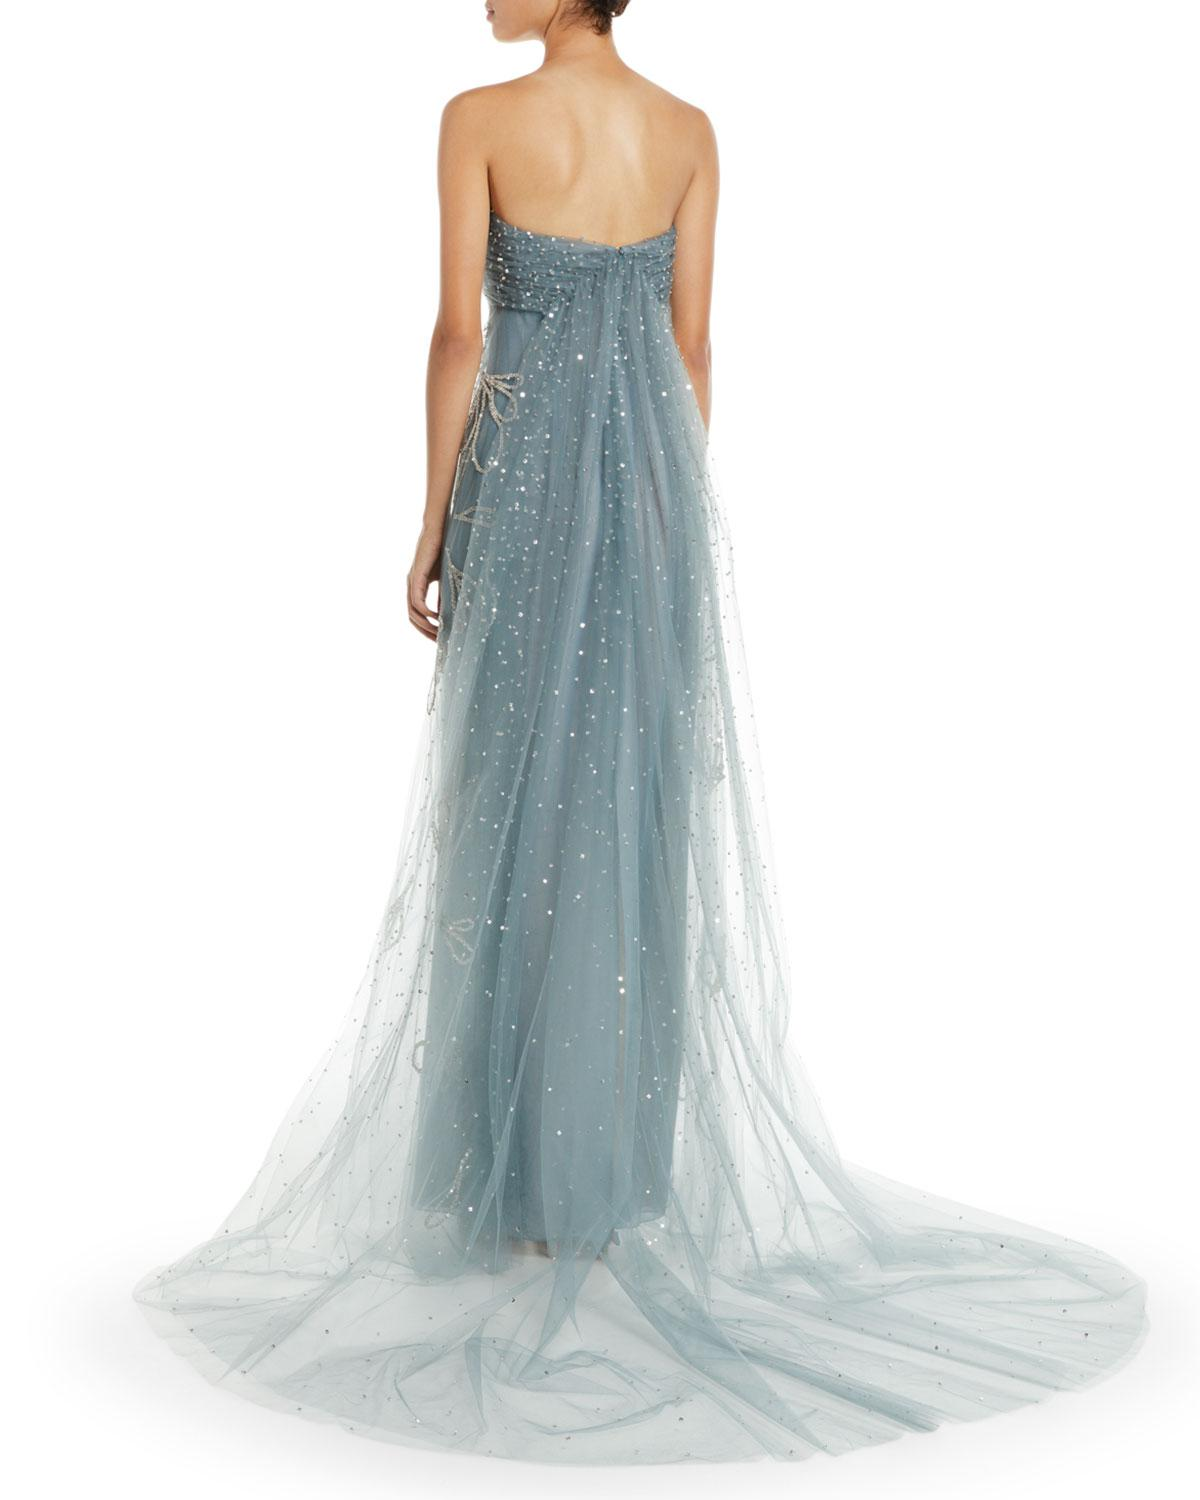 Lyst - Oscar De La Renta Strapless Sequin-embroidered Tulle Evening ...